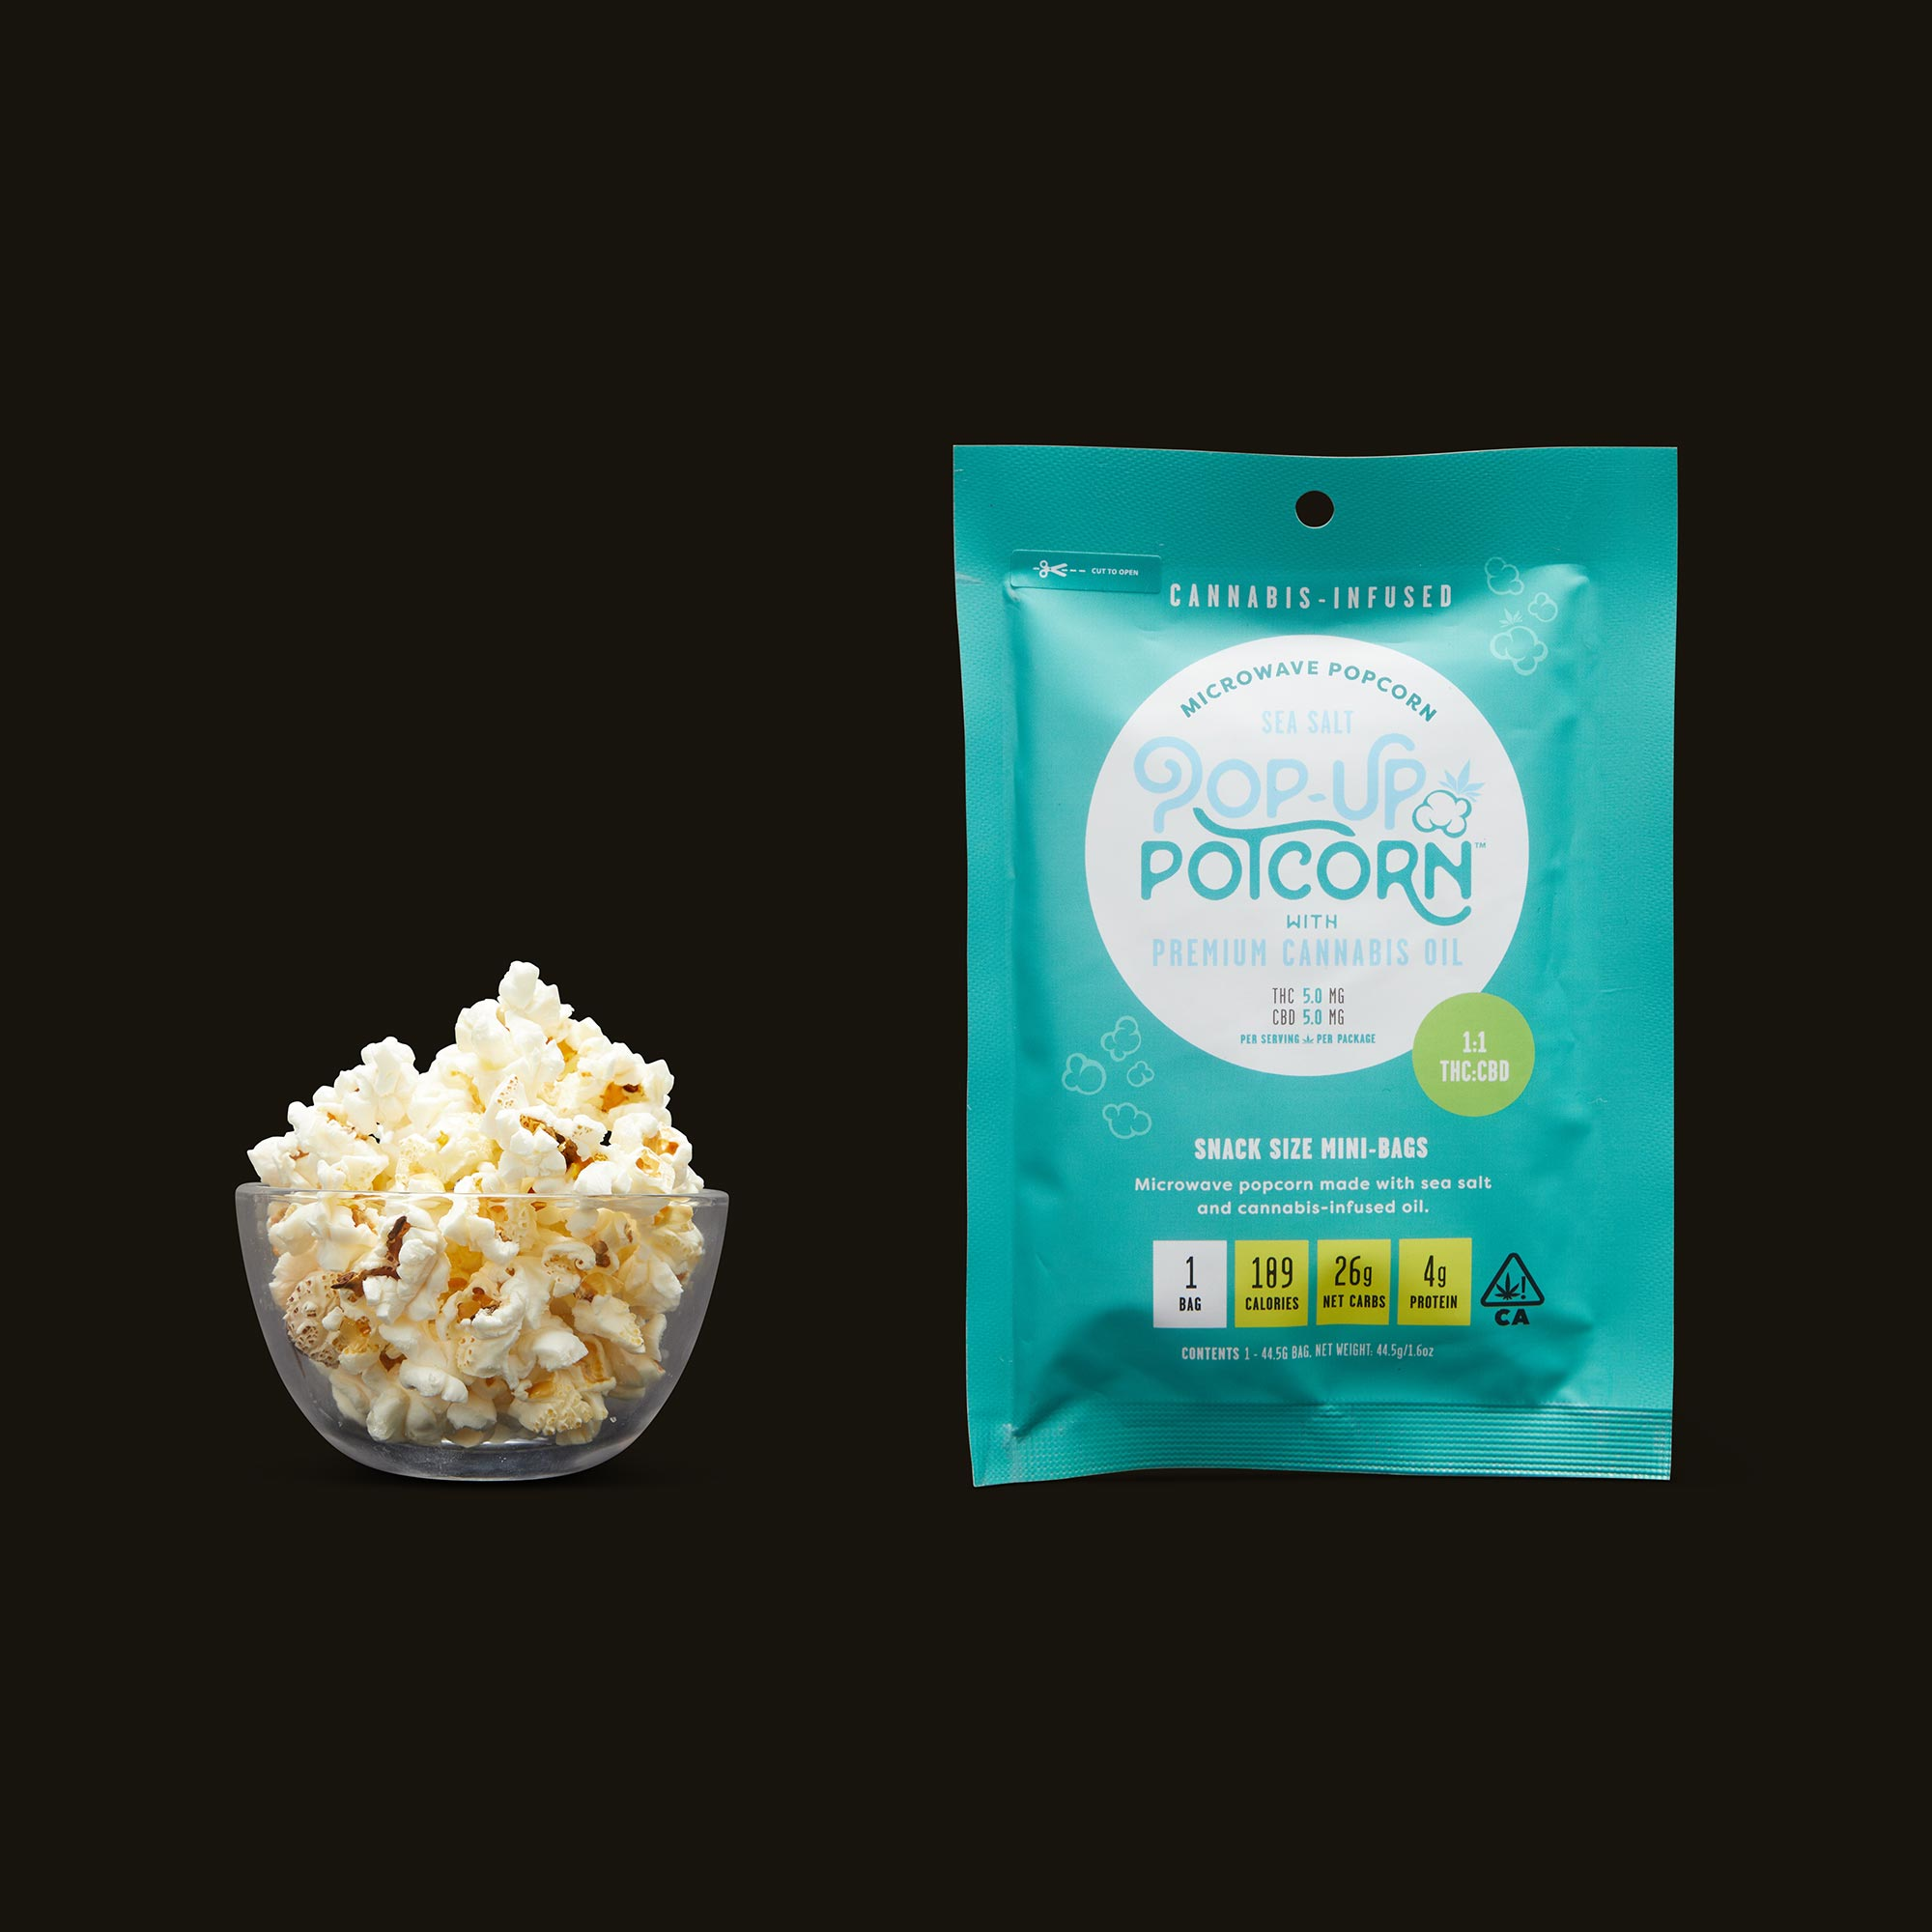 A bowl of Pop-Up Potcorn Sea Salt Microwave Popcorn 1:1 - Single